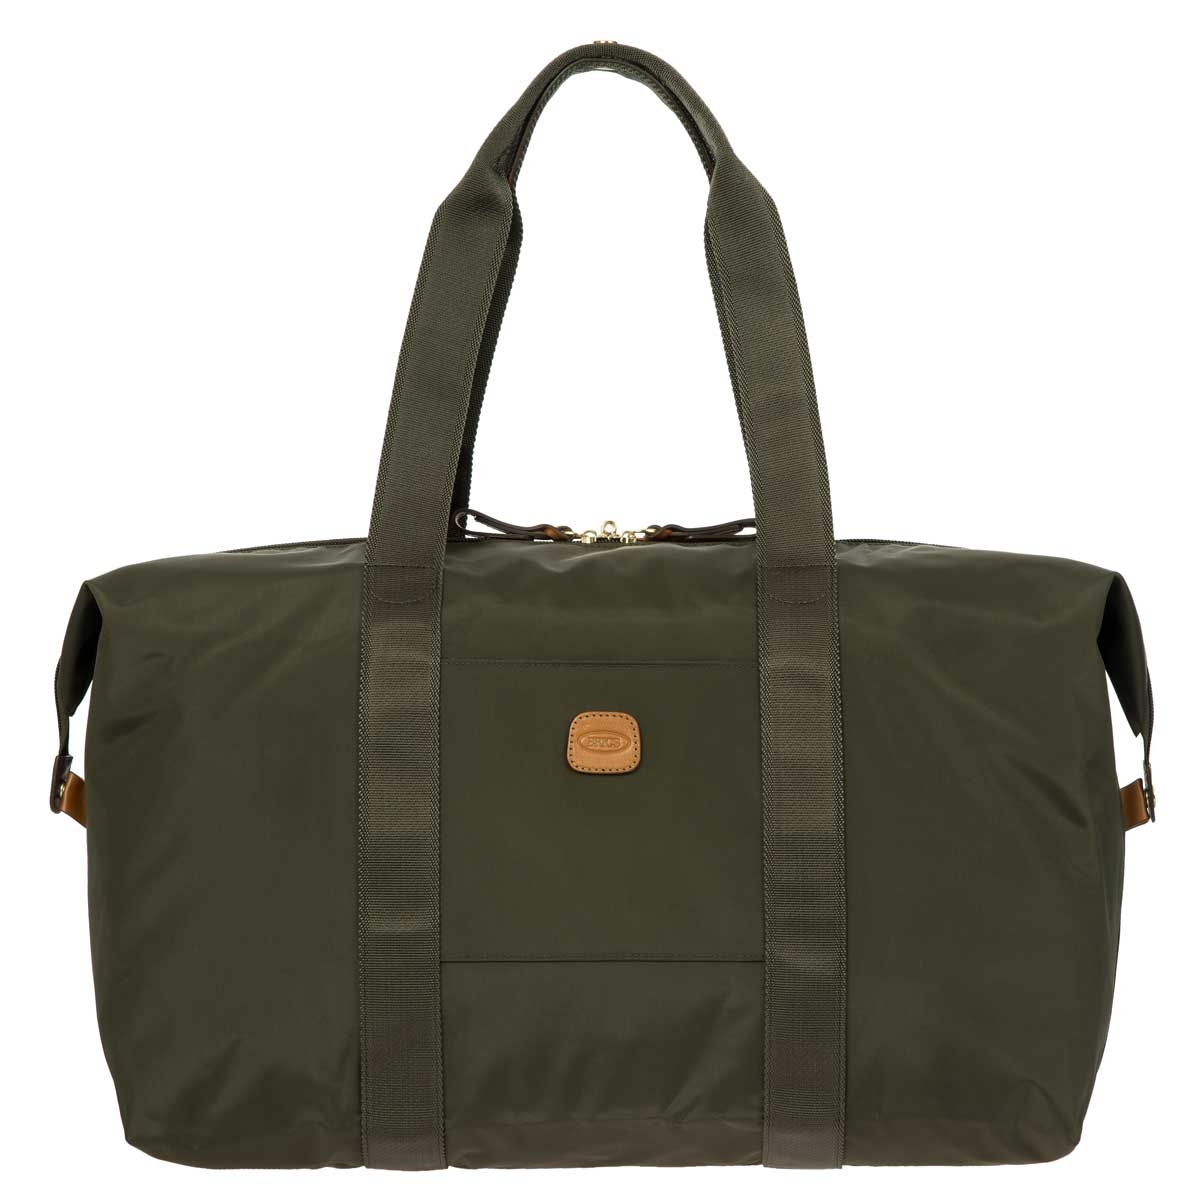 "x-Bag 18"" Folding Duffle by Brics (Color: Olive)"